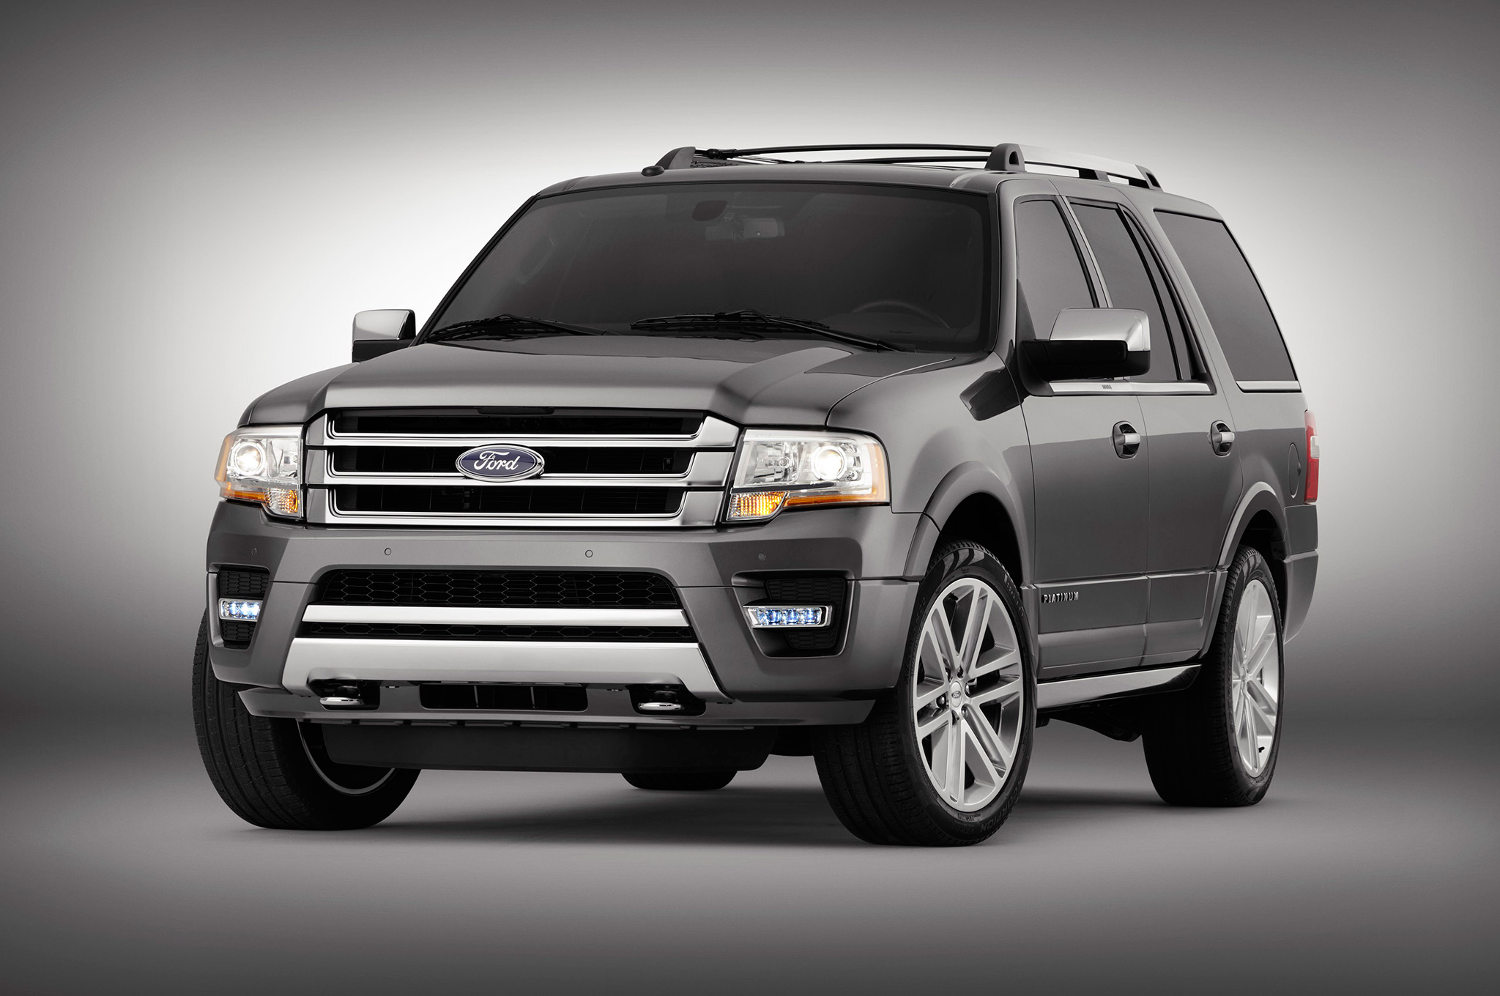 2015 ford everest reviews - Comparison Ford Expedition Xlt 2015 Vs Ford Everest Titanium 2017